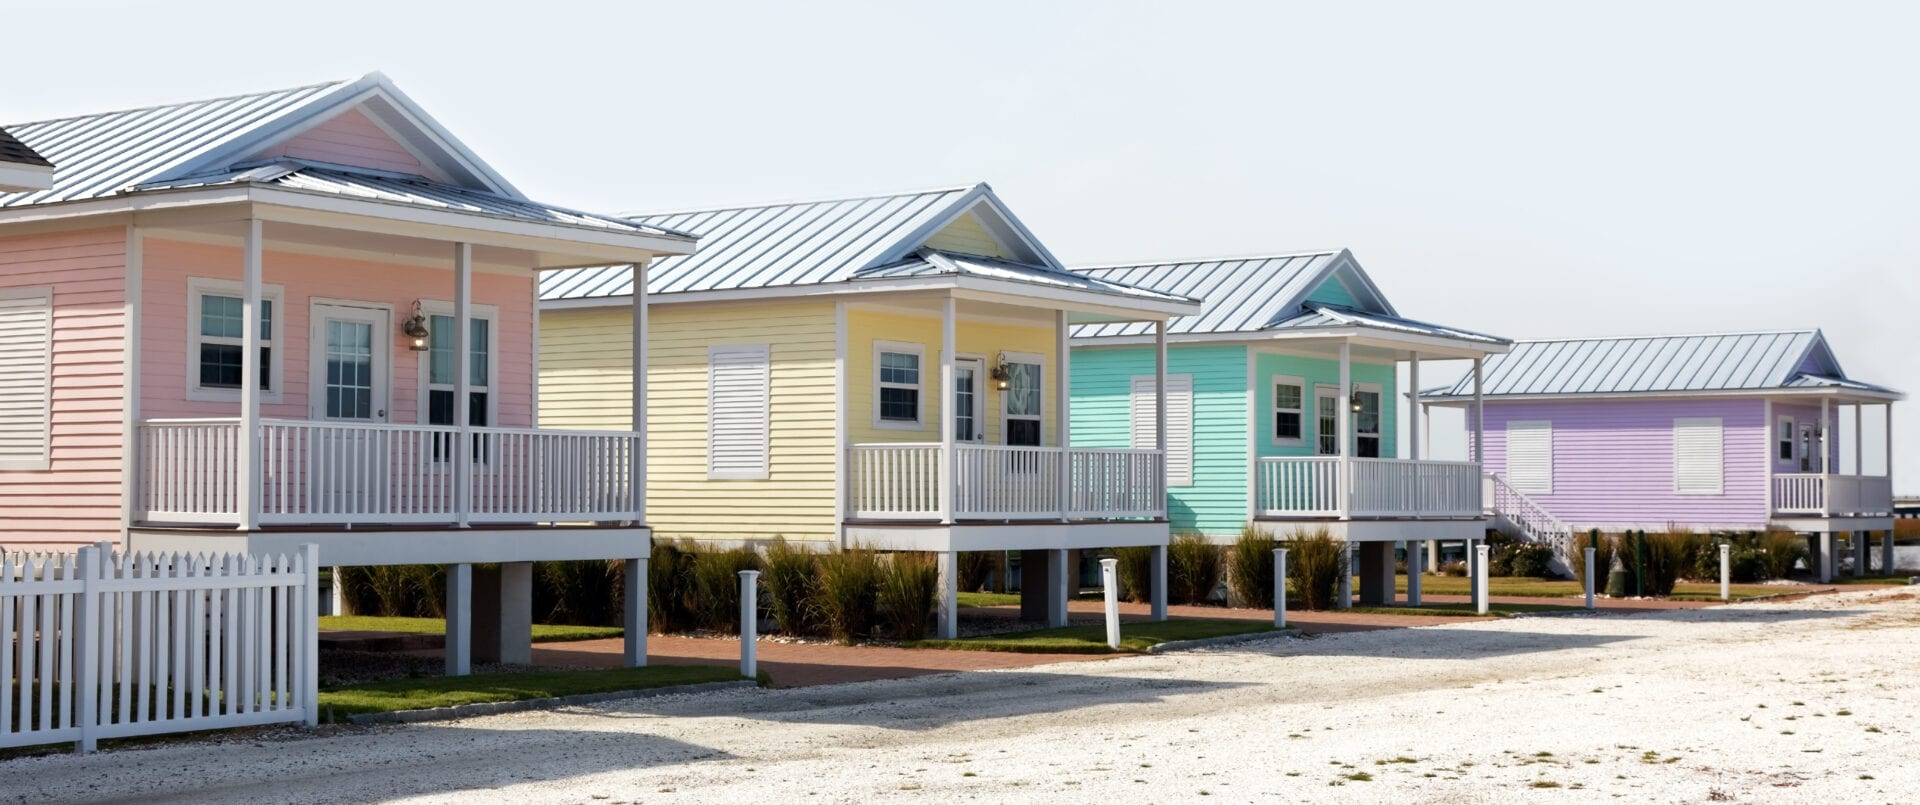 Colorful pastel summer rental cottages.